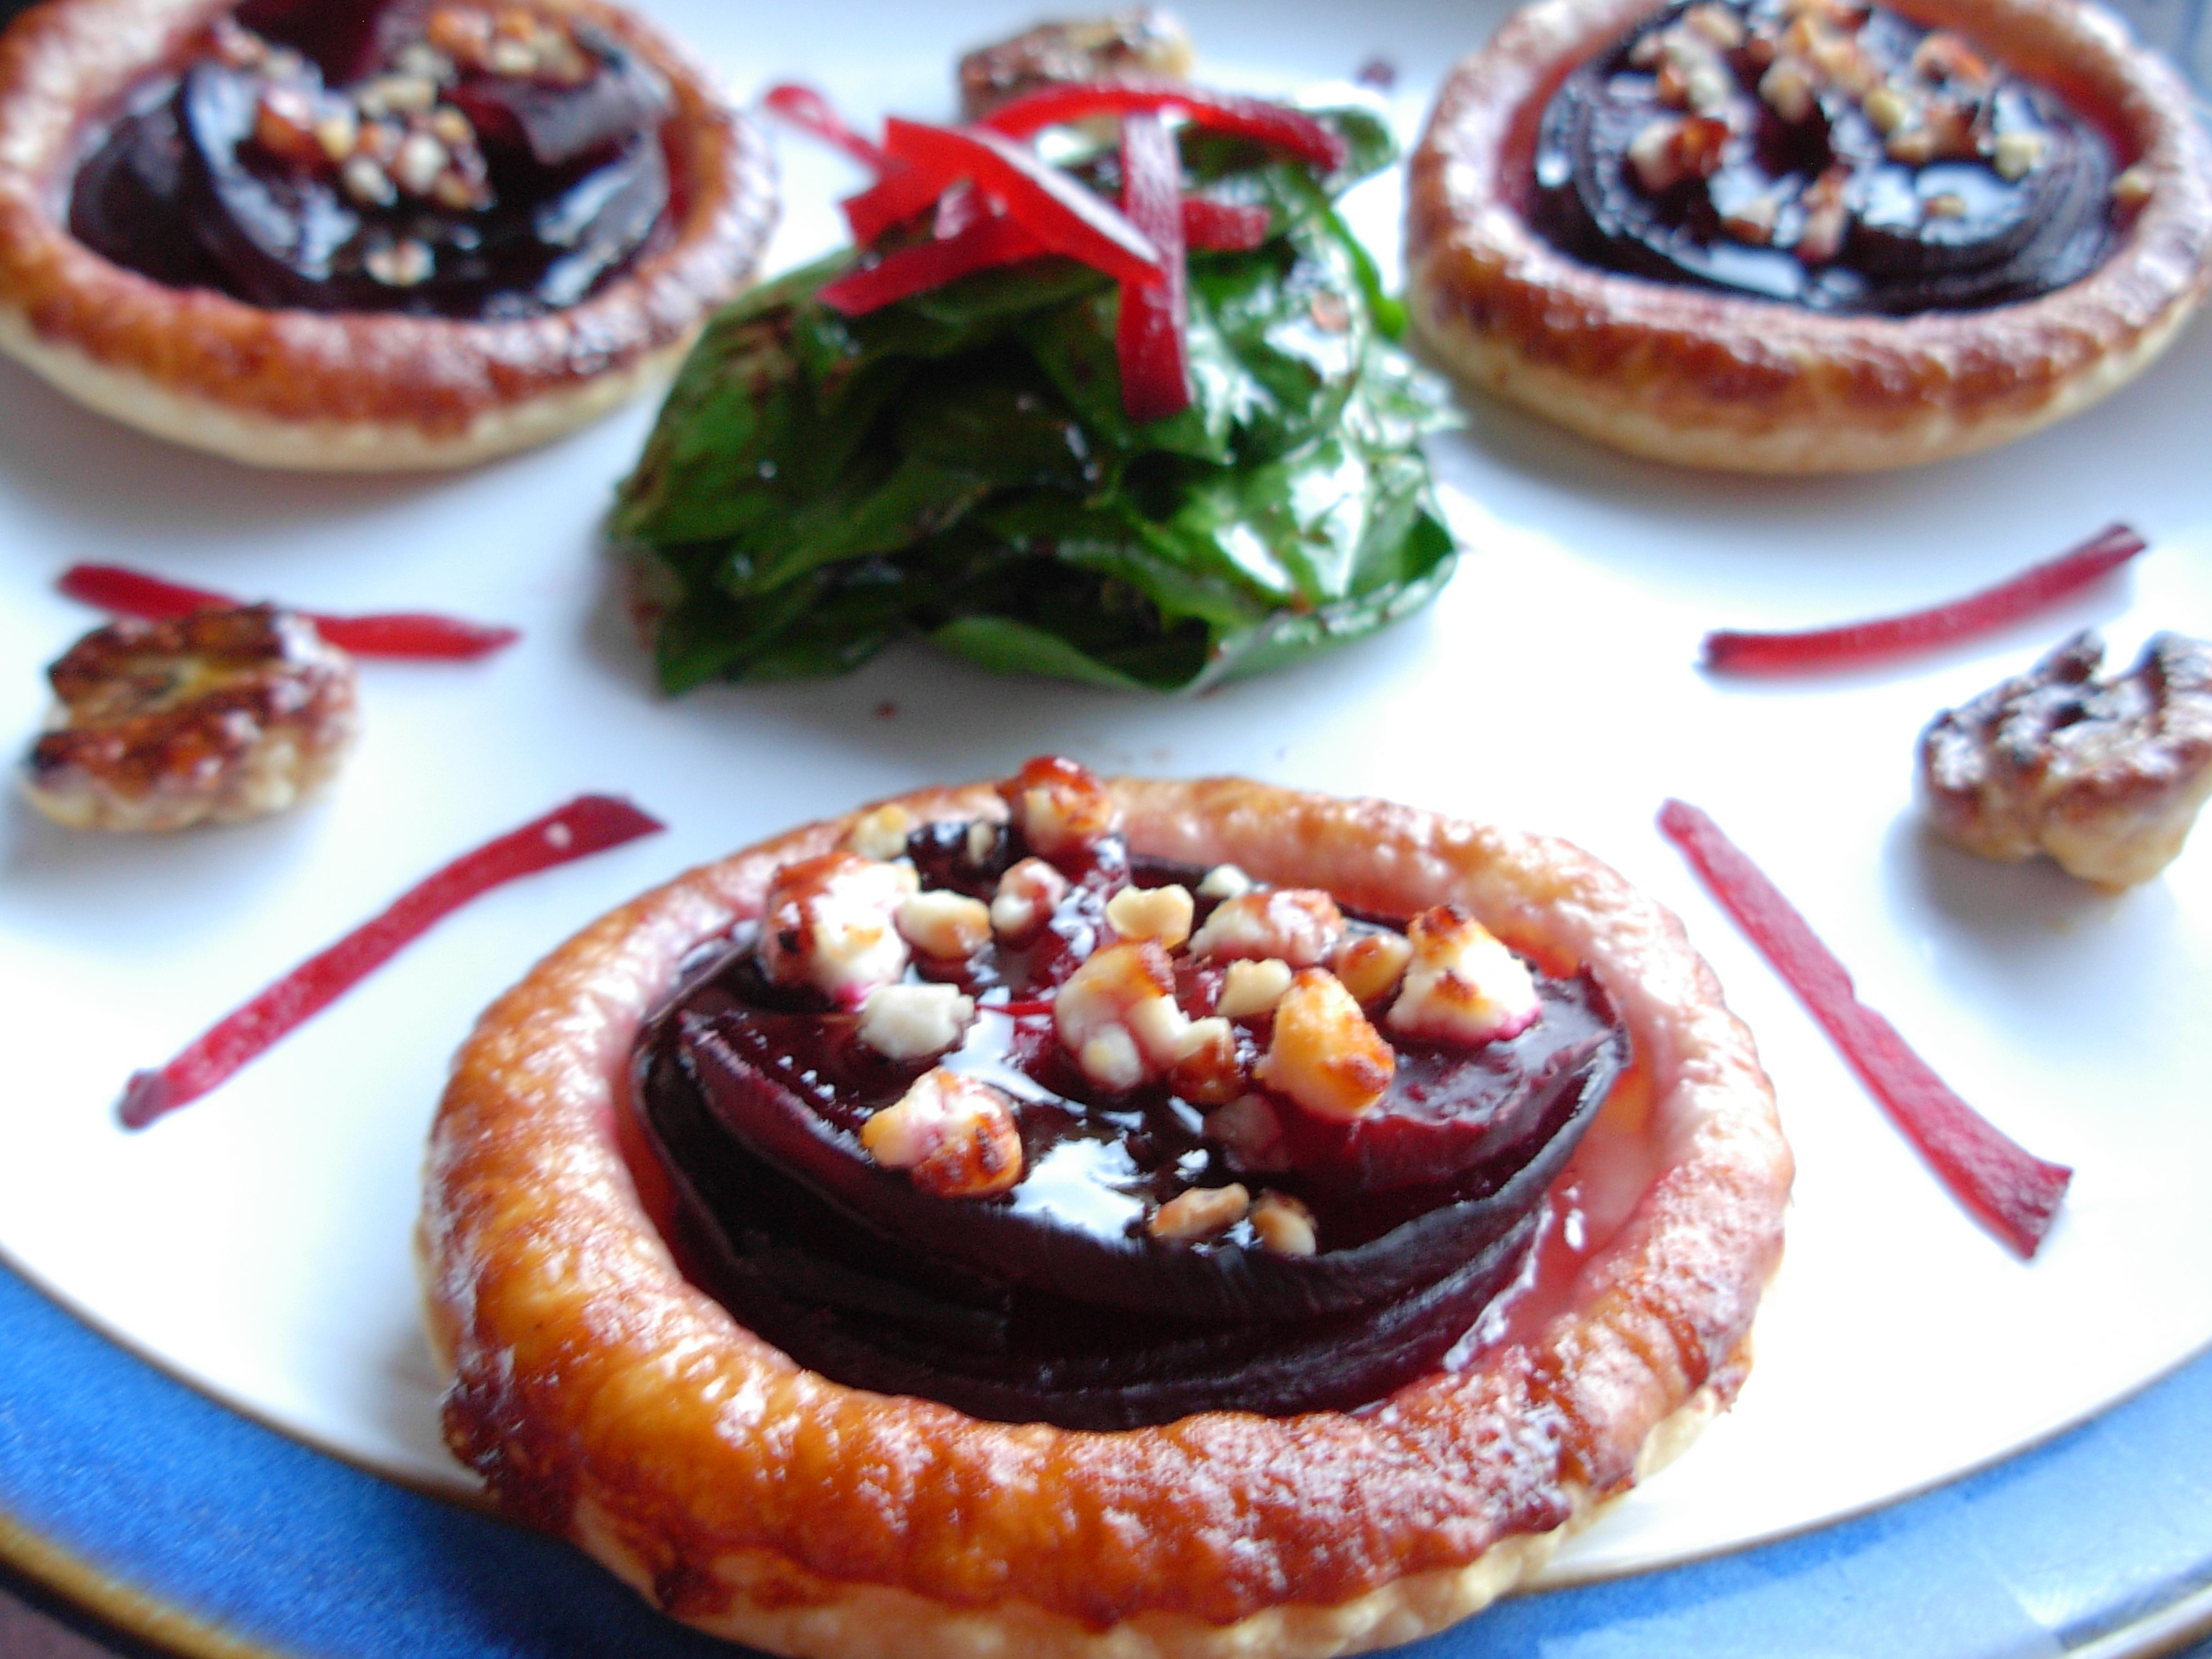 Beetroot and bramble puffed tartlets